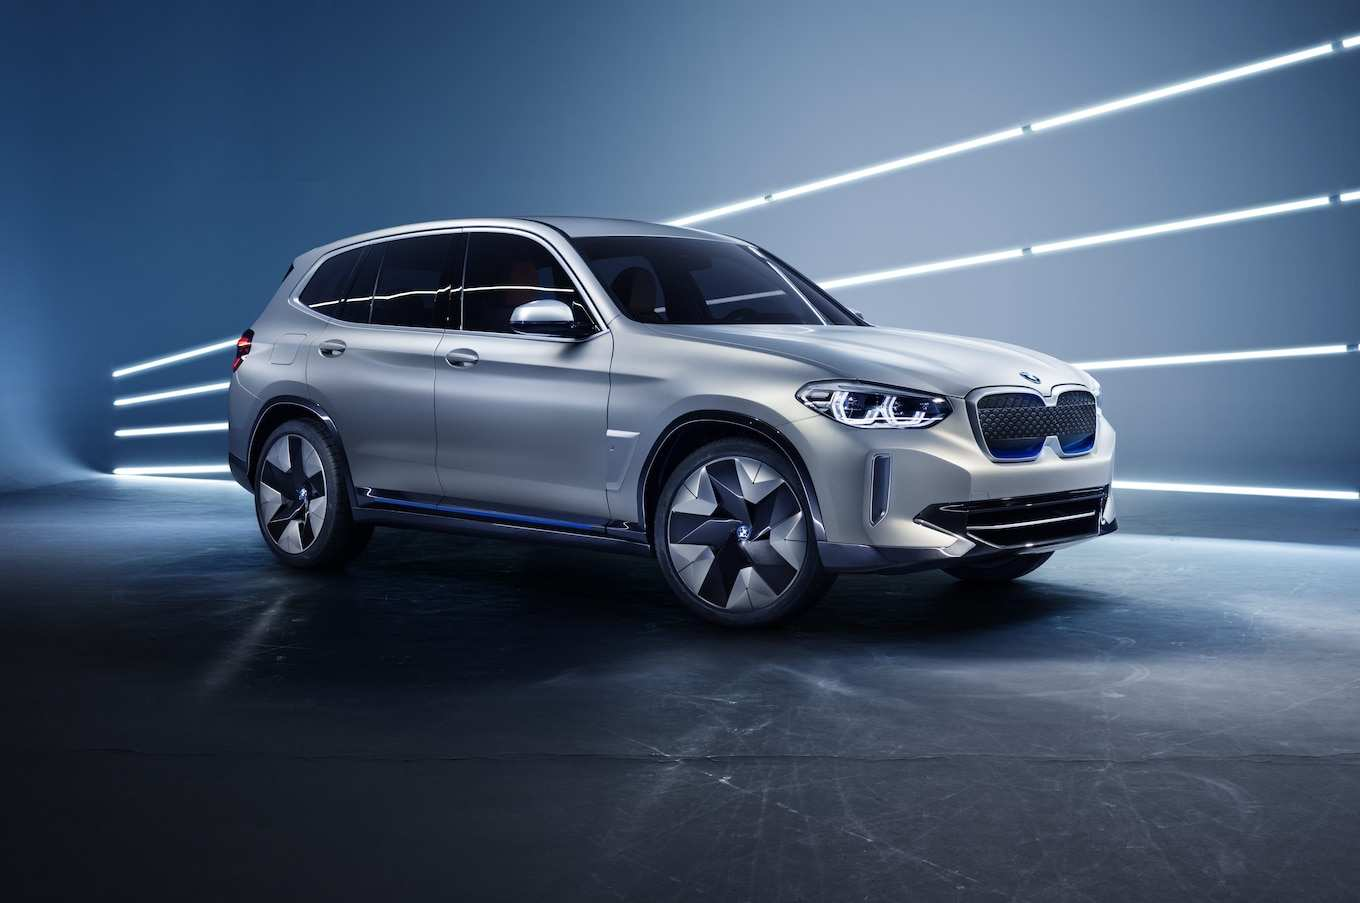 77 Best Review 2020 Bmw X3 Electric Release Date by 2020 Bmw X3 Electric